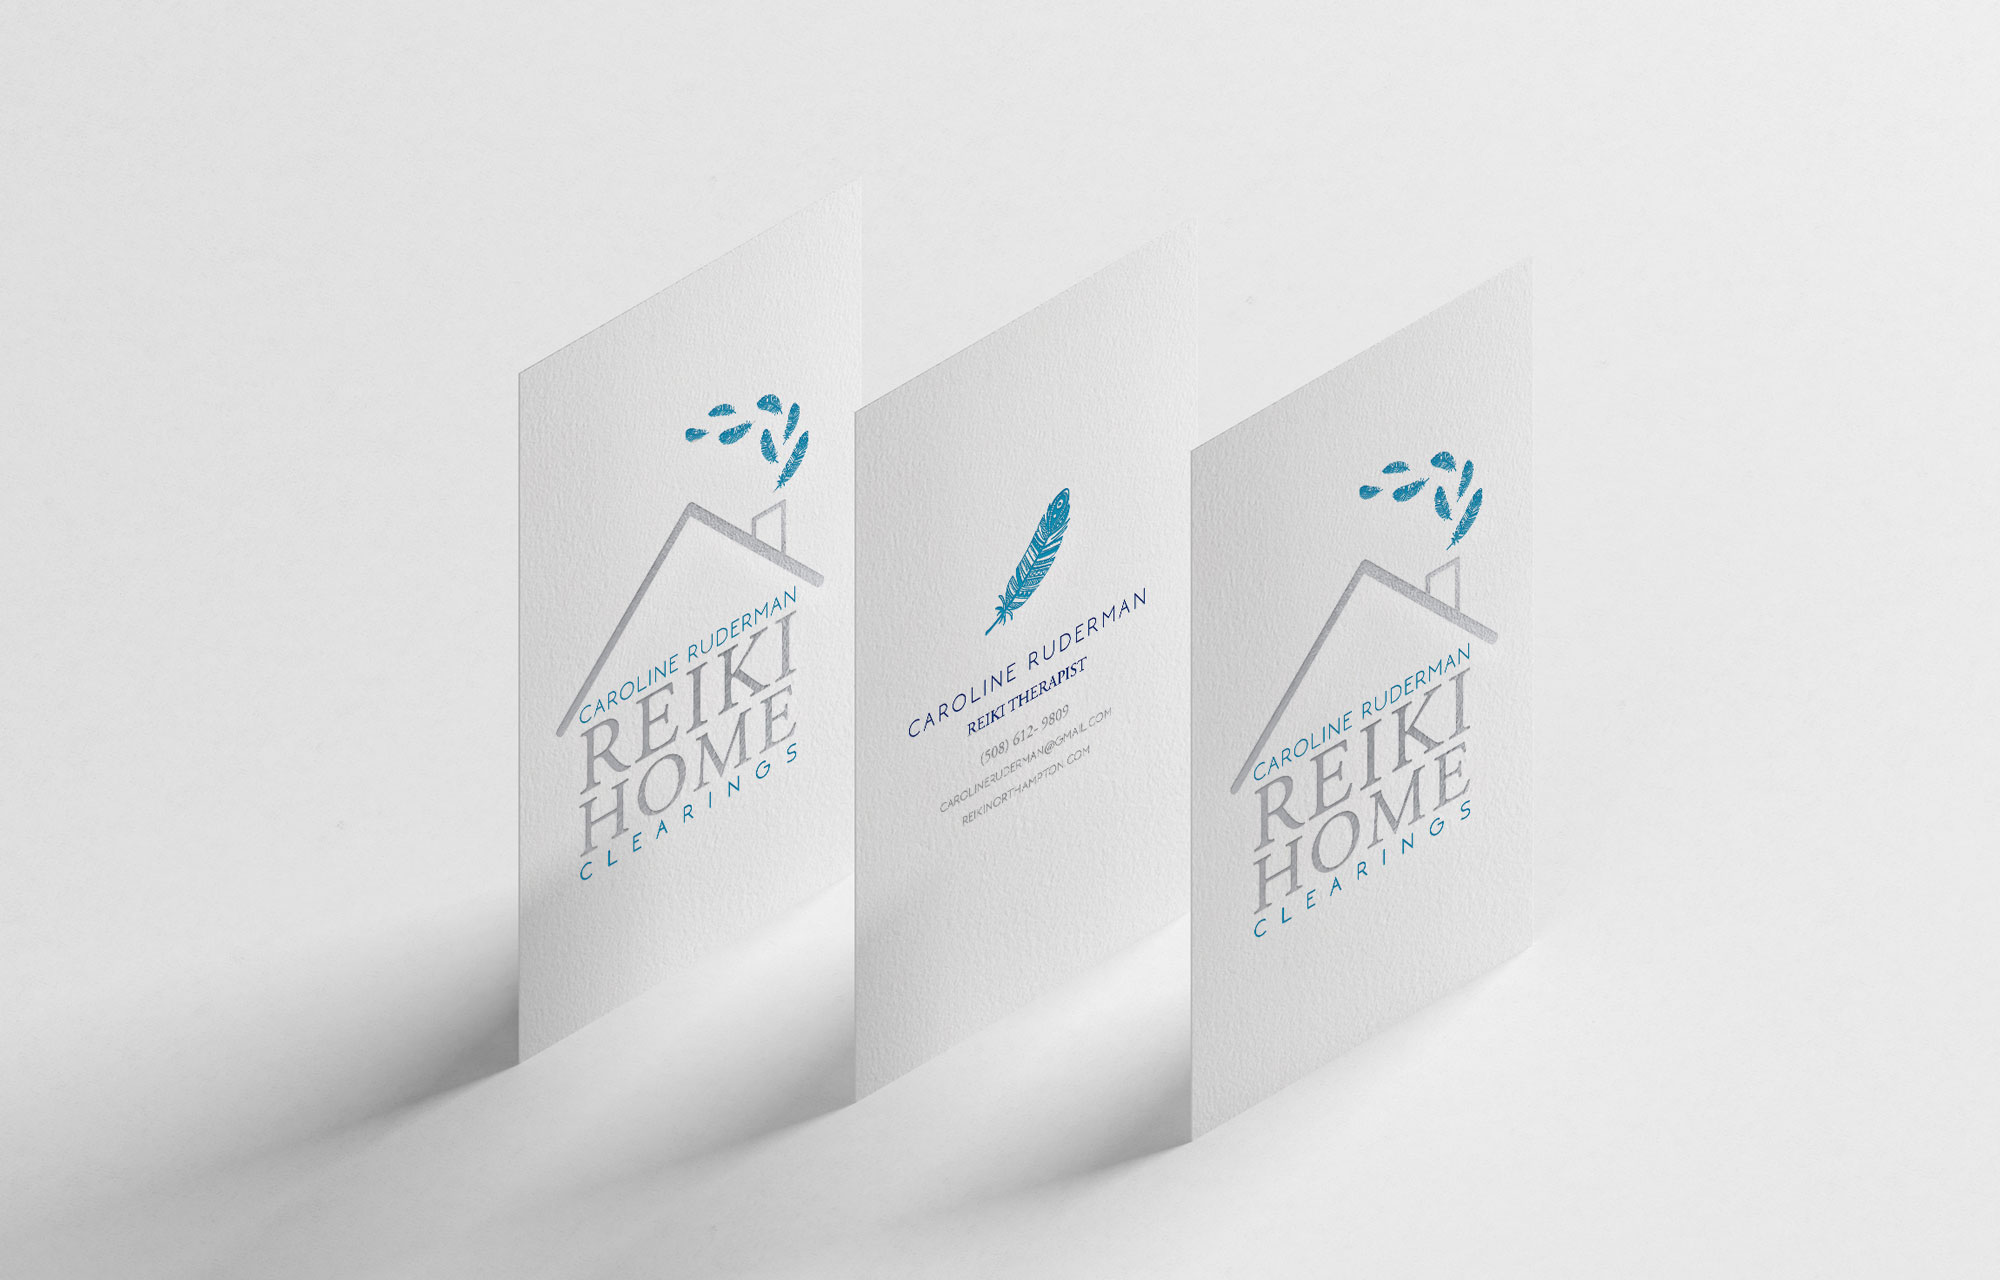 Business Card Design in Northampton, Northampton Graphic Designer, Graphic Design in Amherst, Logo design, Logo design with house, Light and modern logo design, logo designer, branding design, marketing design.